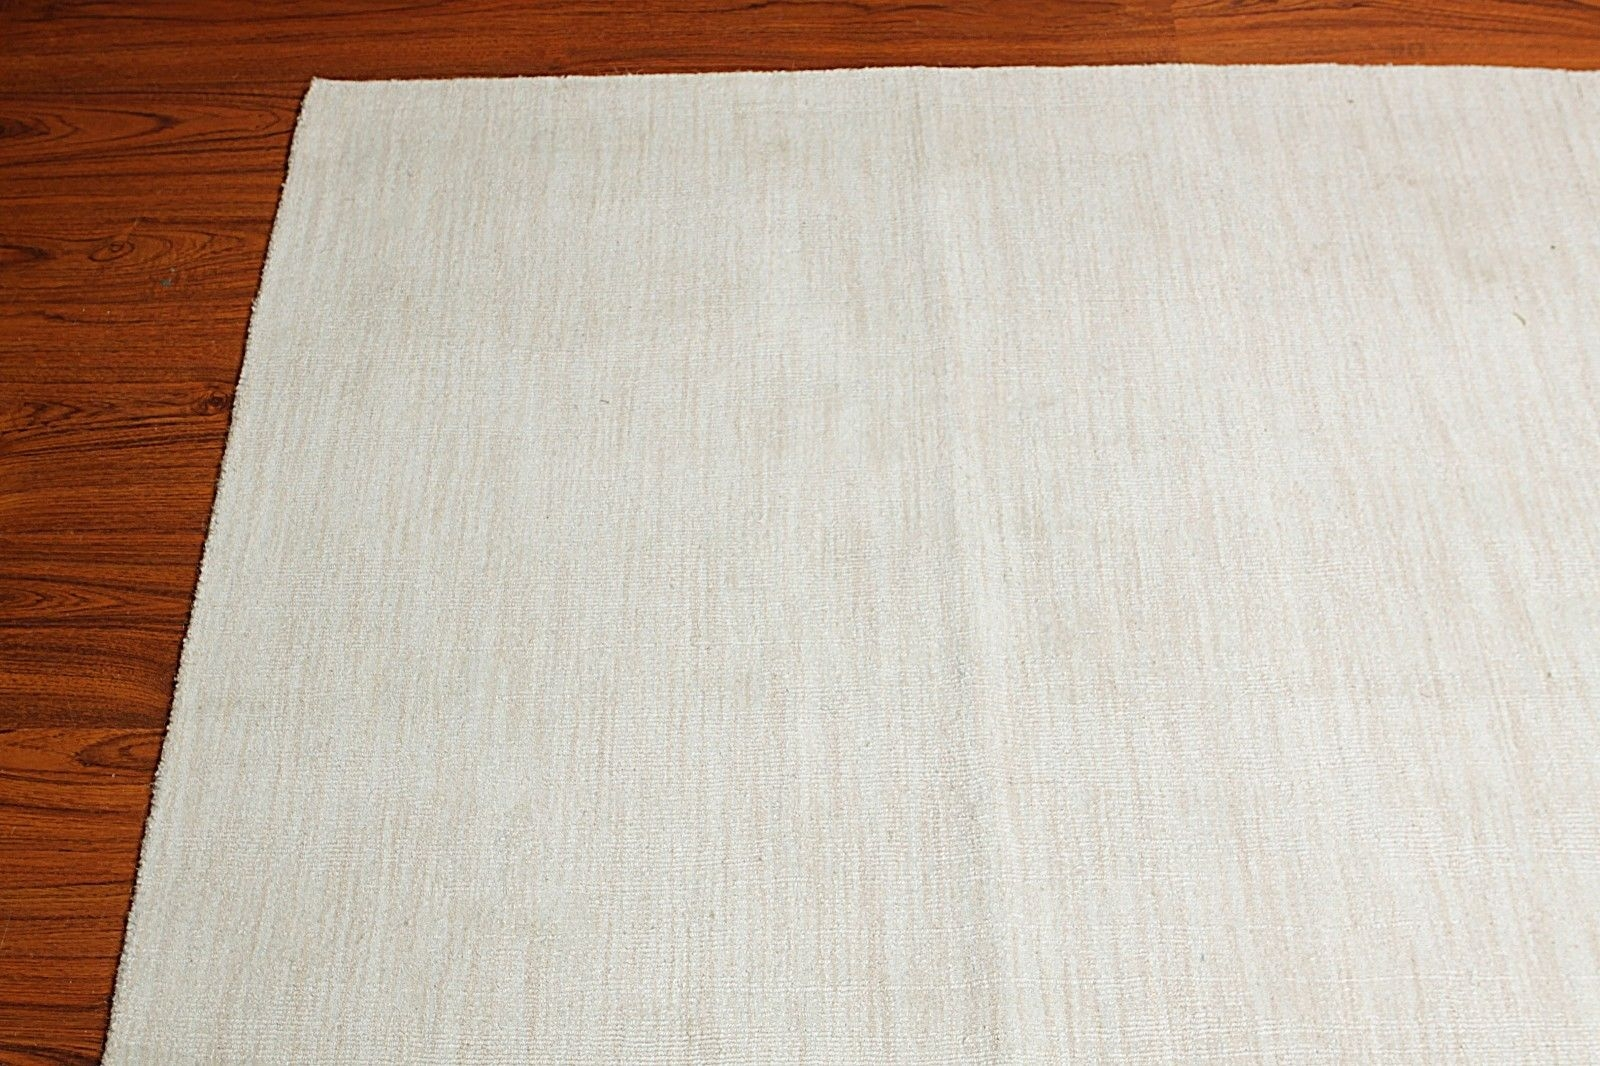 9×12 Custom Made Handmade Plain Textured Area Rug Carpet Ivory Pertaining To Custom Made Area Rugs (Image 1 of 15)